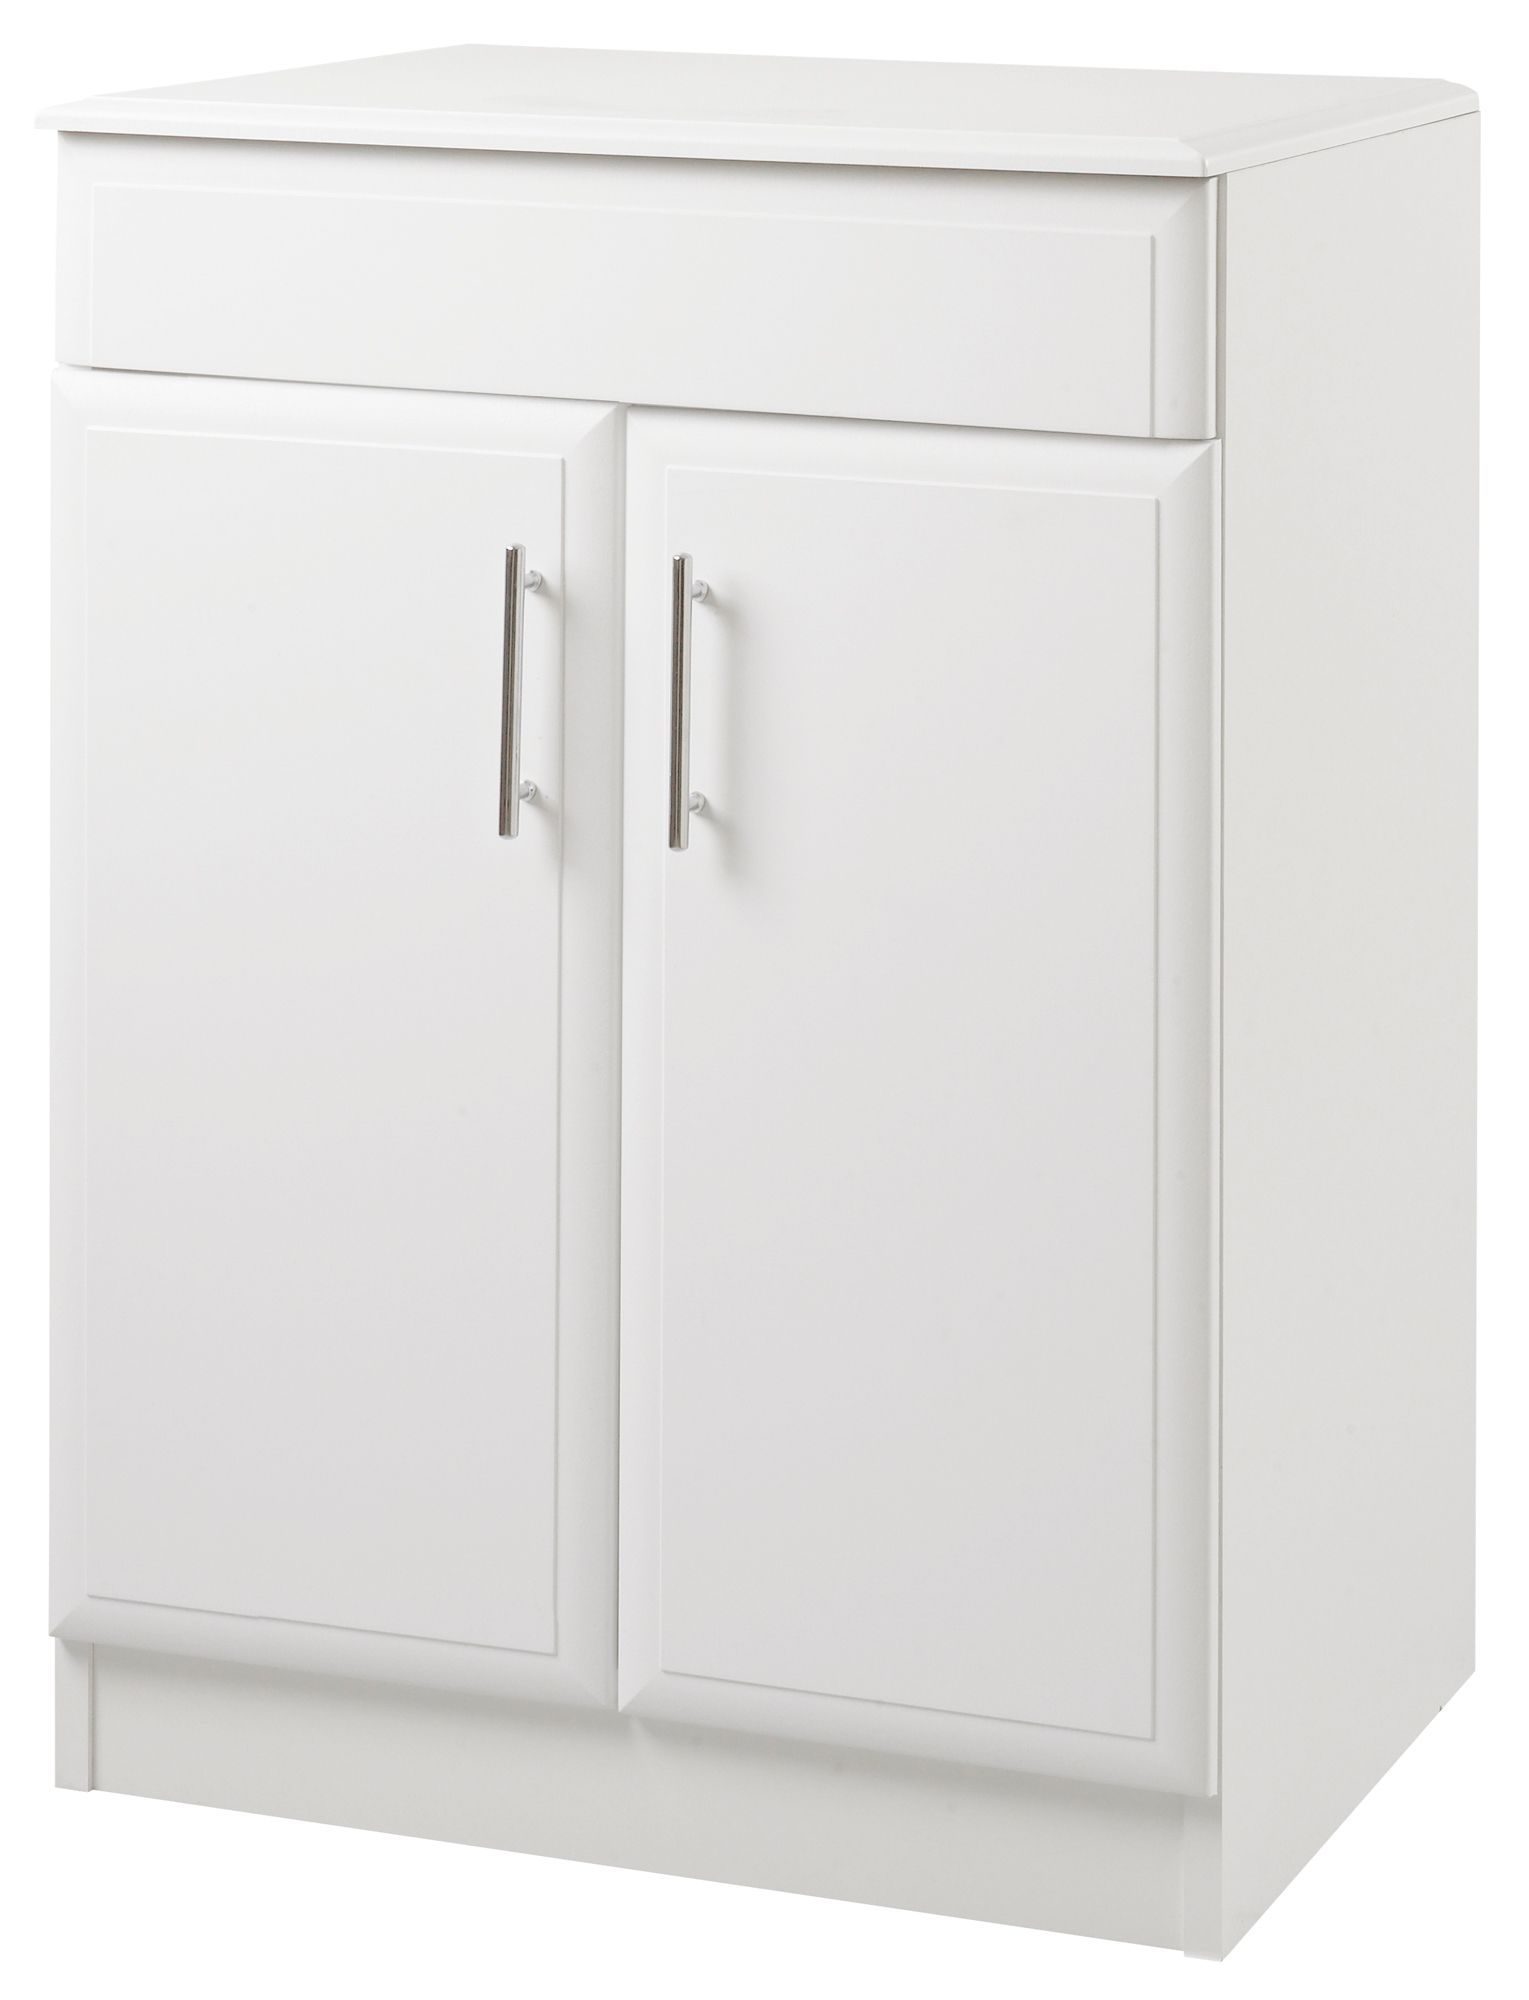 Bathroom Cabinets Uk Bq Bq White Vanity Unit Departments Diy At Bq